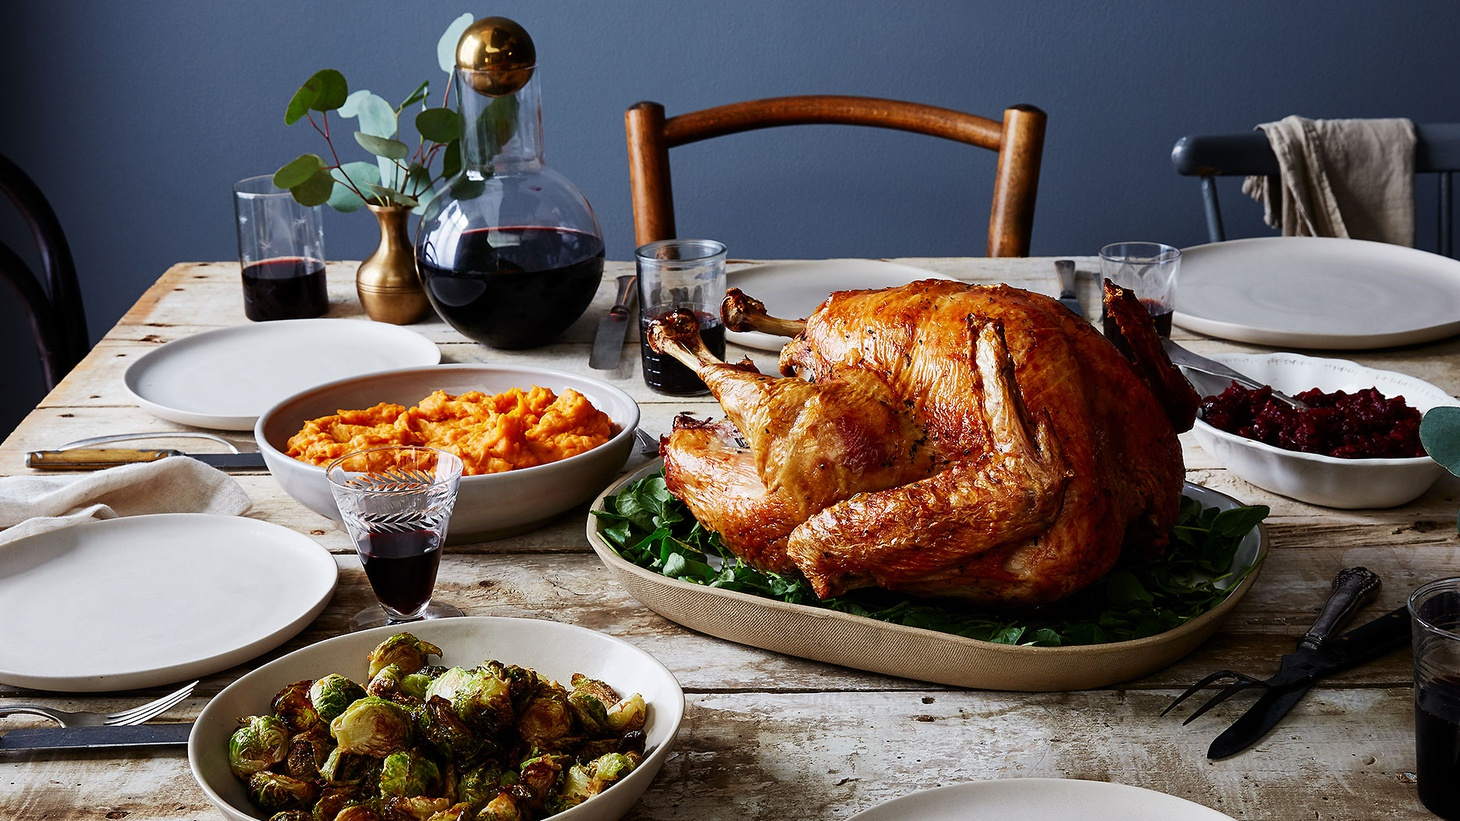 Ahead of Thanksgiving, we've got tips and recipes from the founders of Food52, Dorie Greenspan and Mark Bittman that will turn your feast into a success. Los Angeles Magazine's Patric Kuh talks truffles, and chef Isa Fabro tells us what dishes are served at a Pinoy Thanksgiving. Plus, fresh dates at your local farmers' market, and Jonathan Gold treats us to Tempura Endo in Beverly Hills.